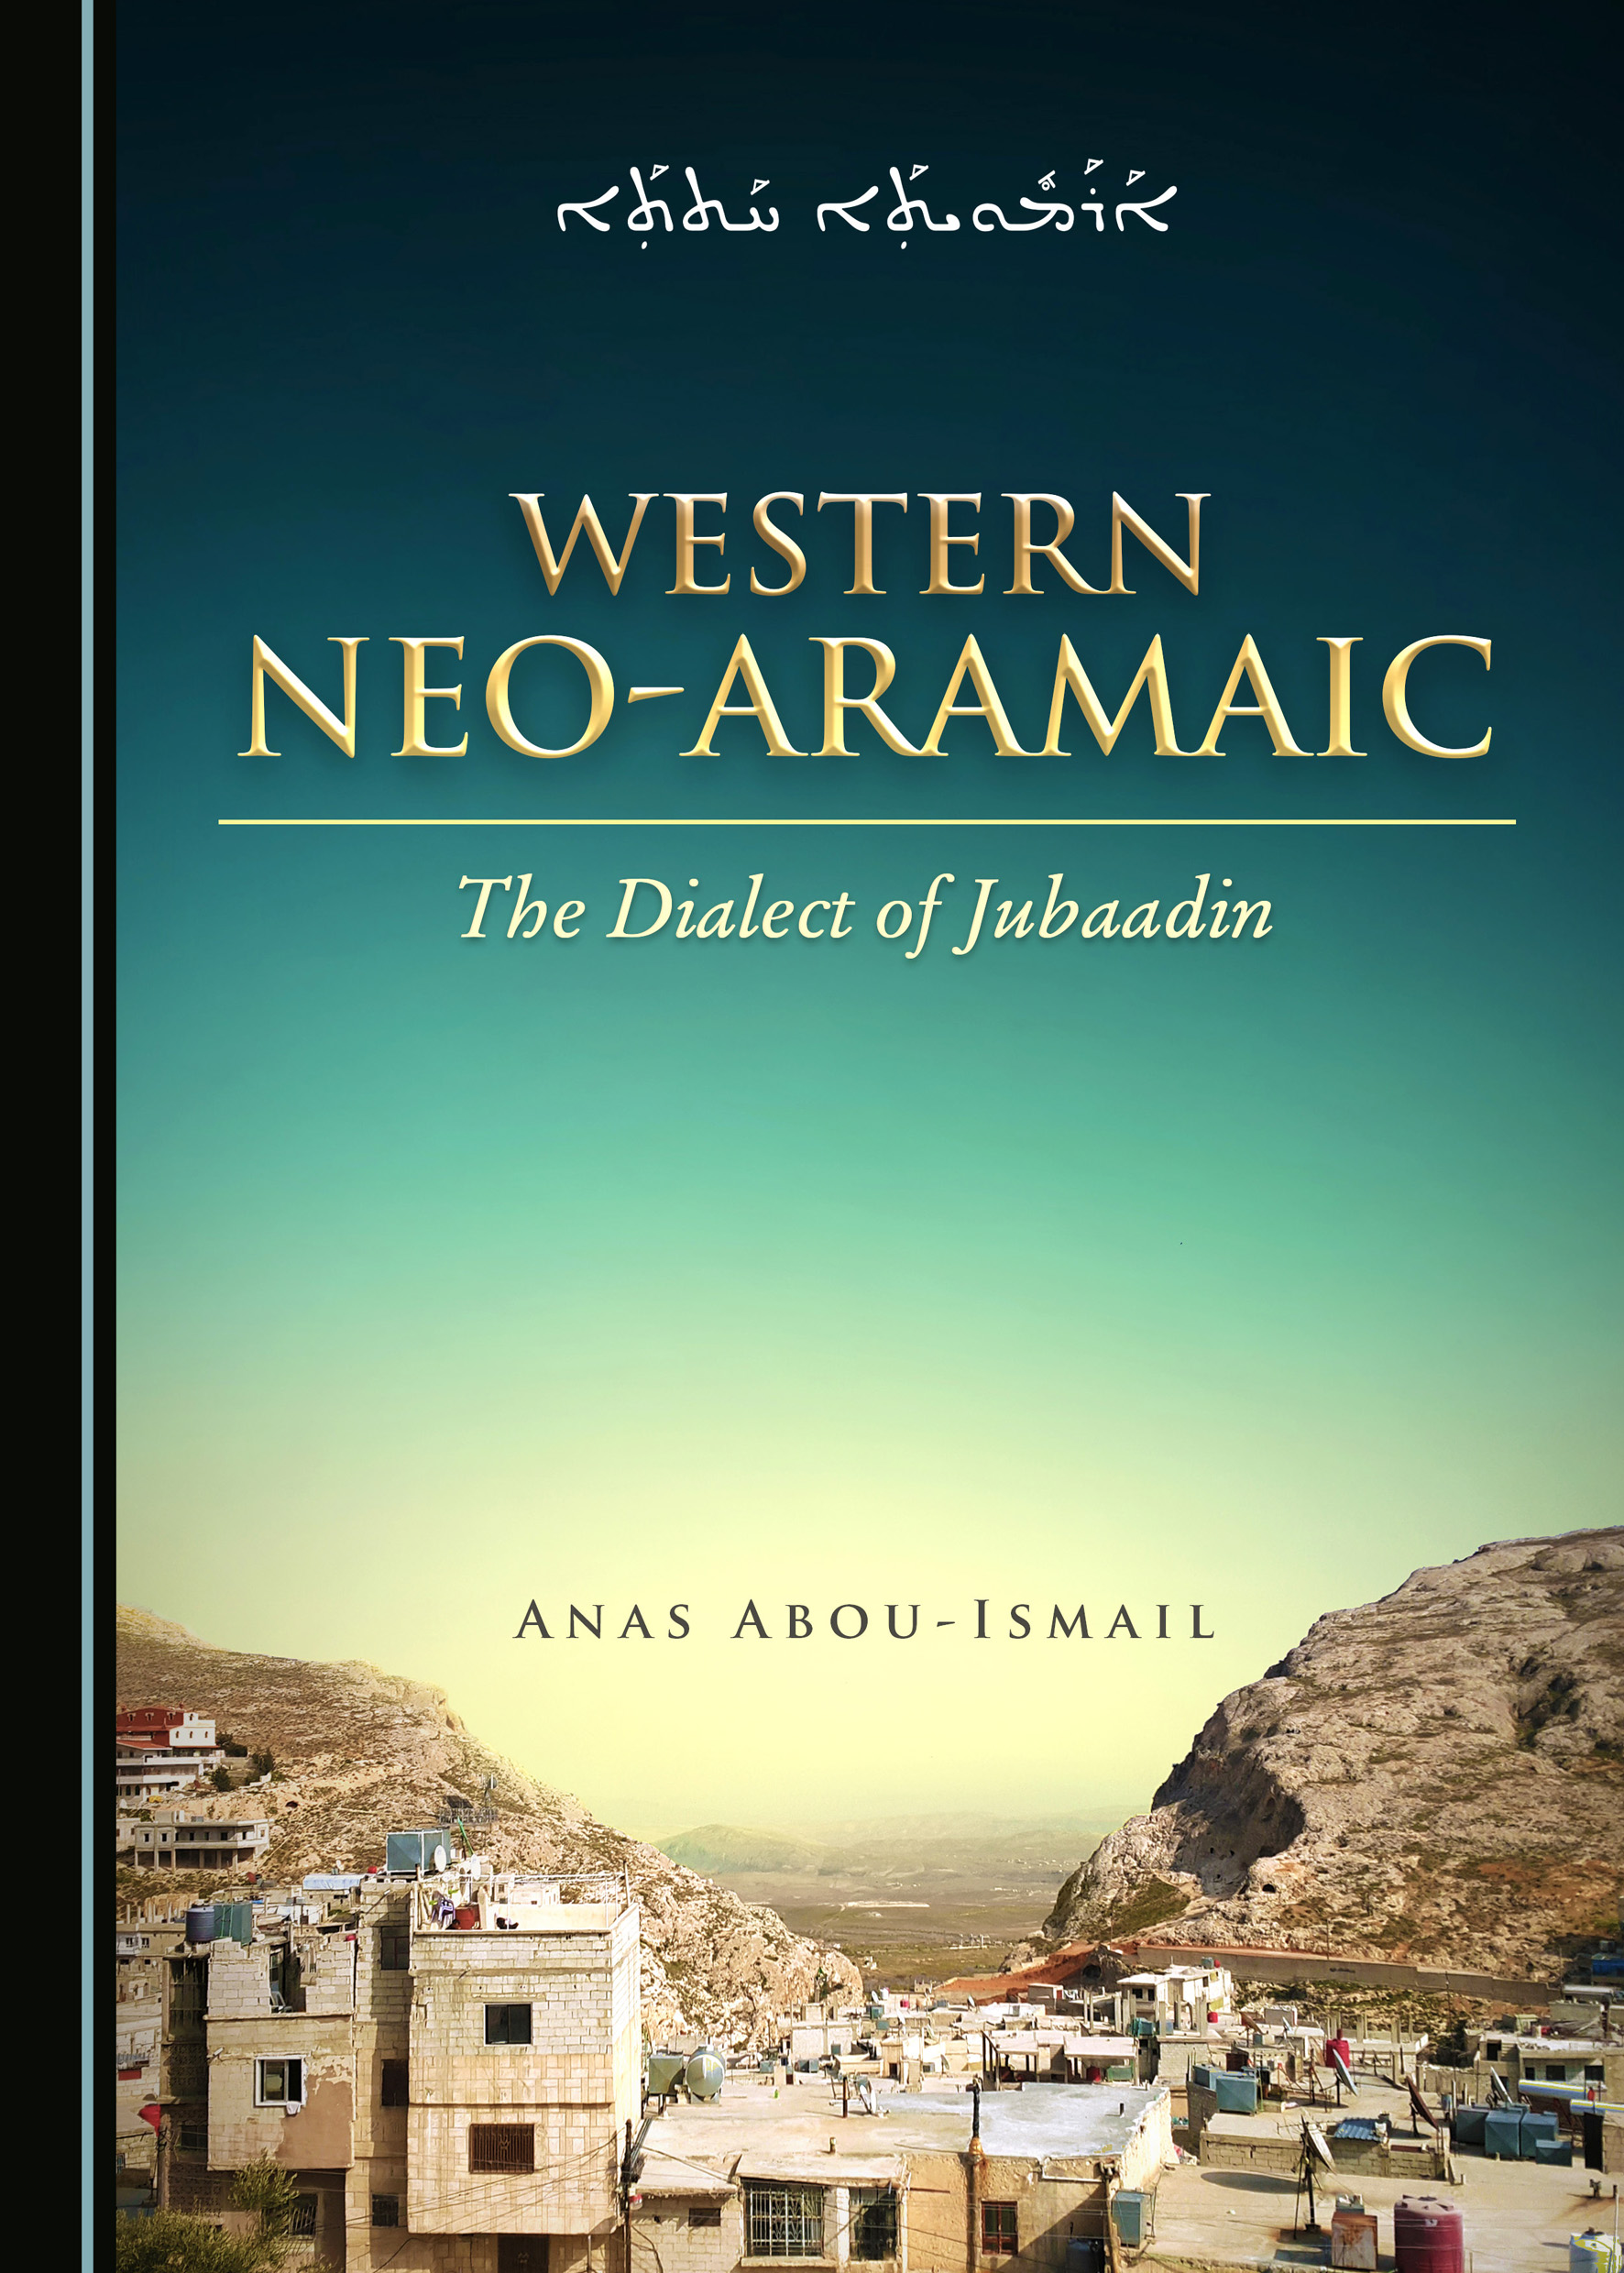 Western Neo-Aramaic: The Dialect of Jubaadin